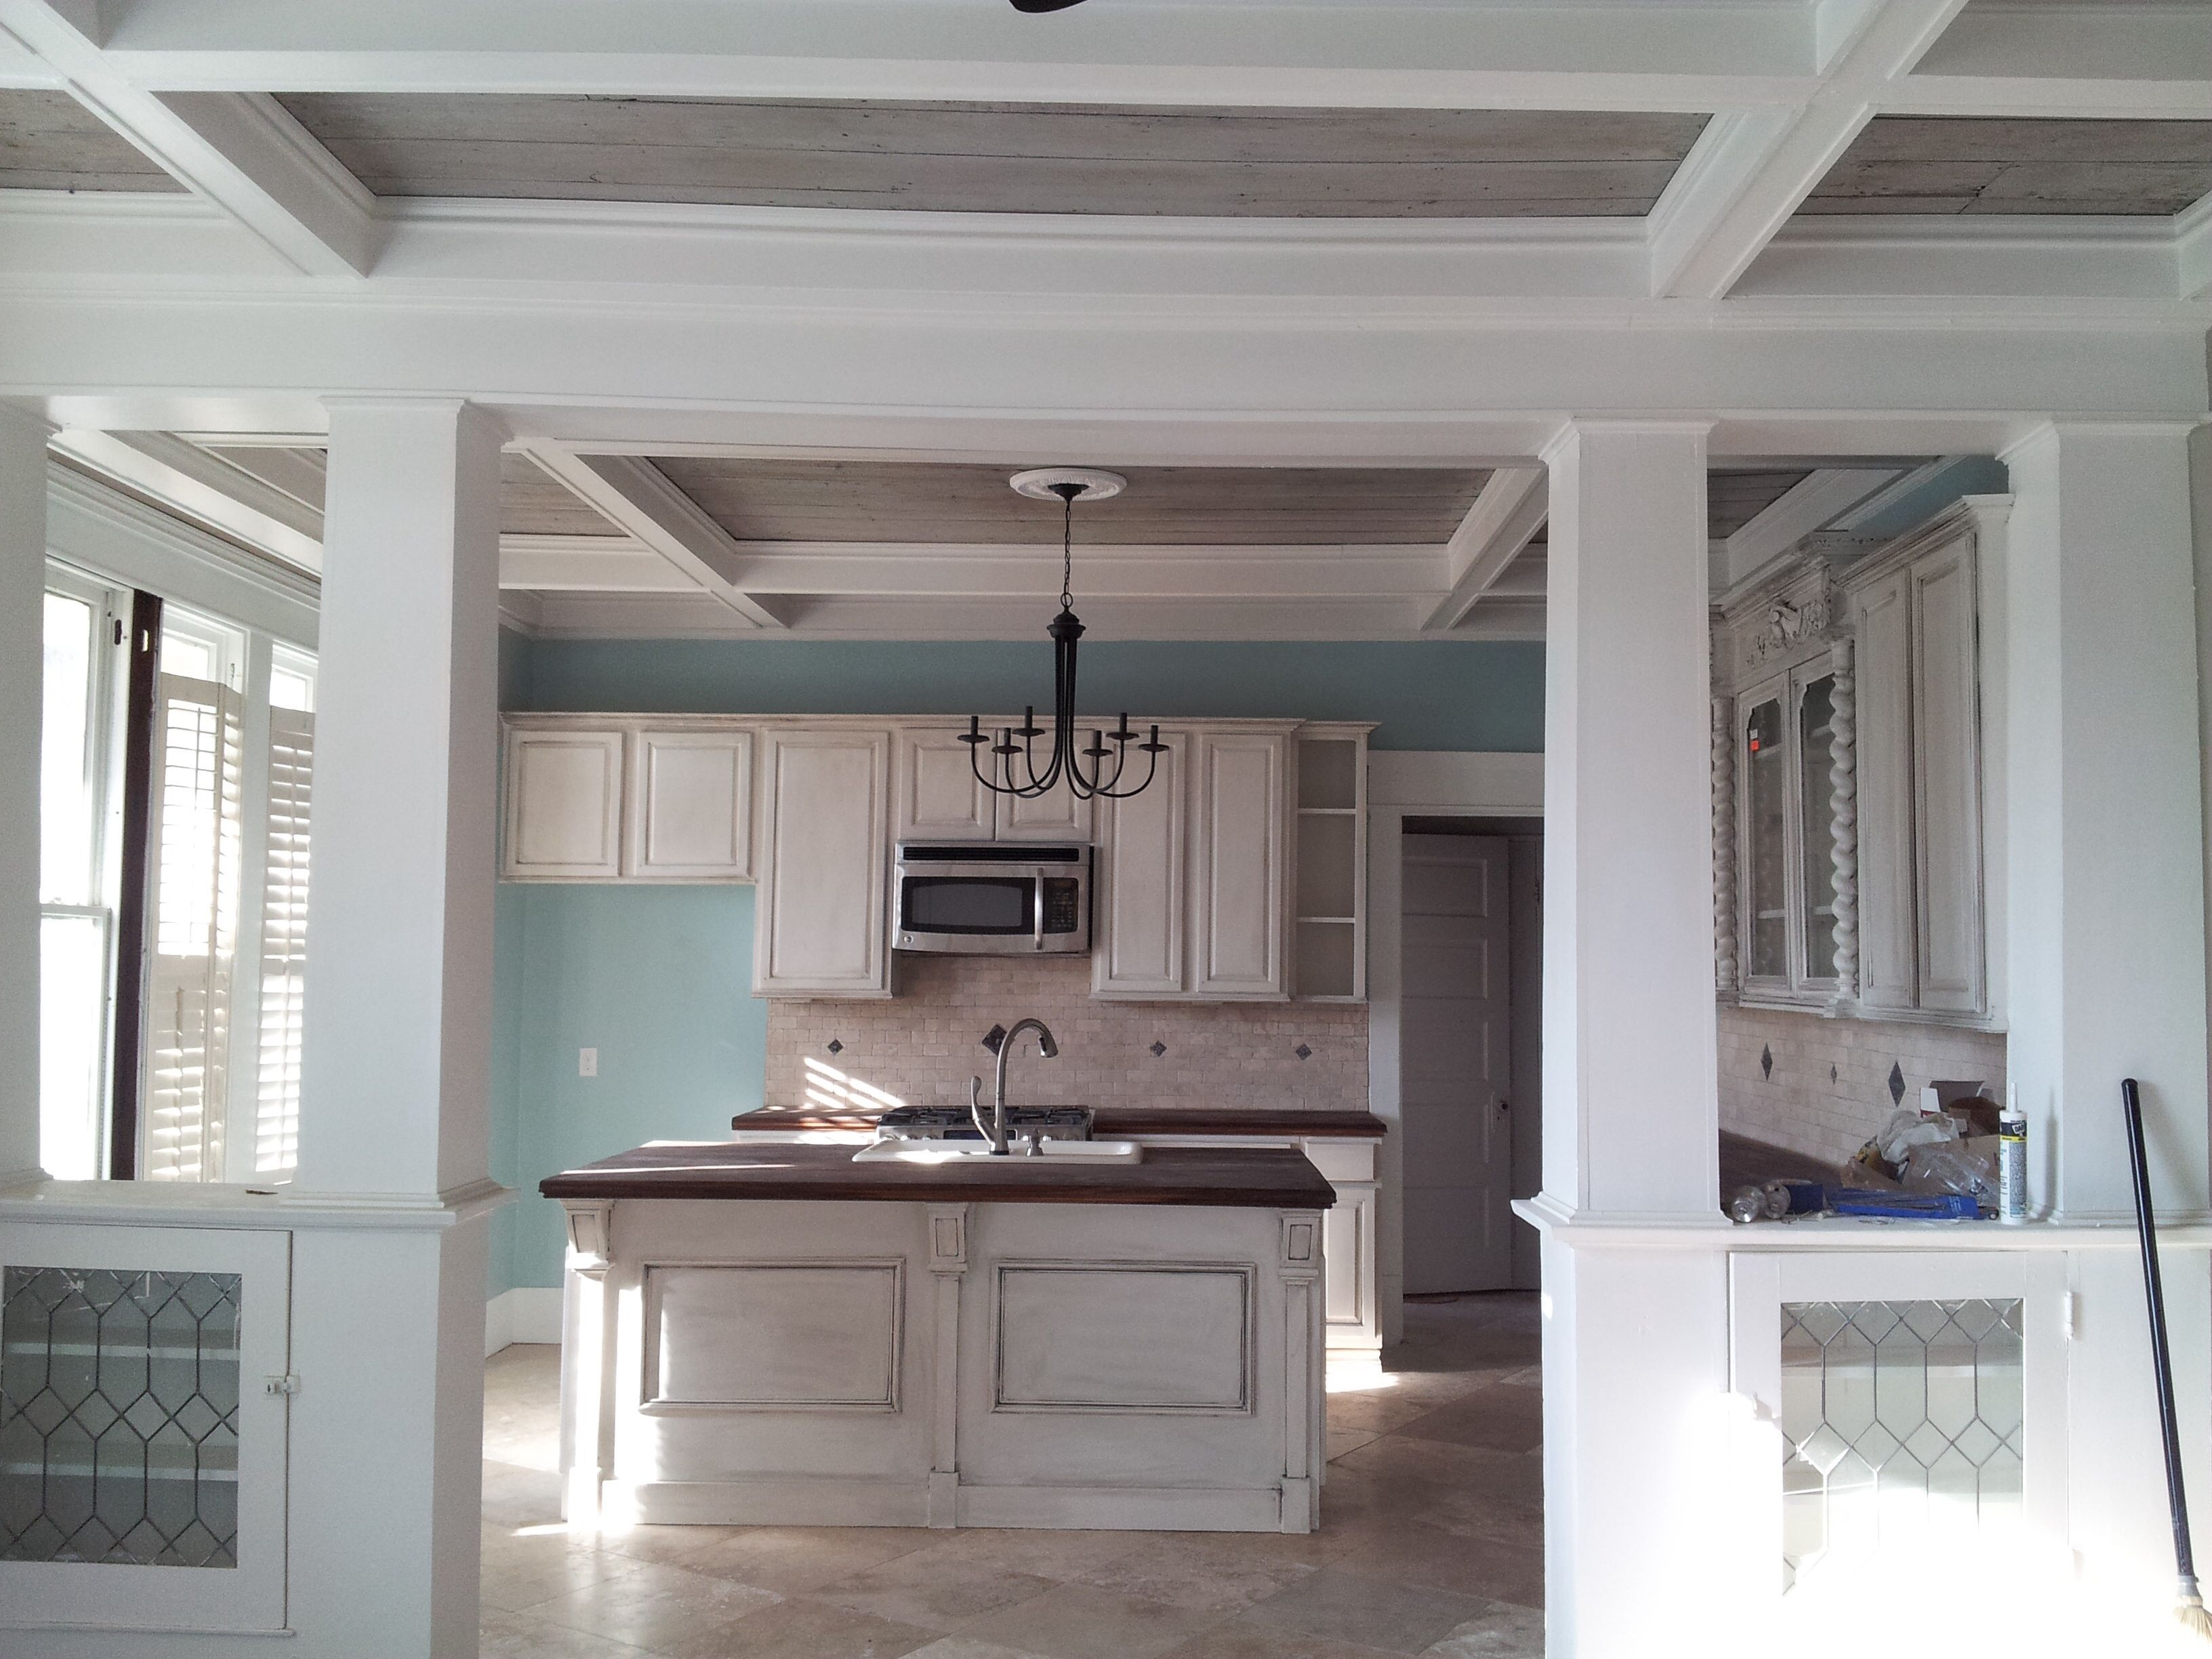 Beach Cottage Kitchen 1920 S Bungalow Renovated Beach House Kitchen Dream Home